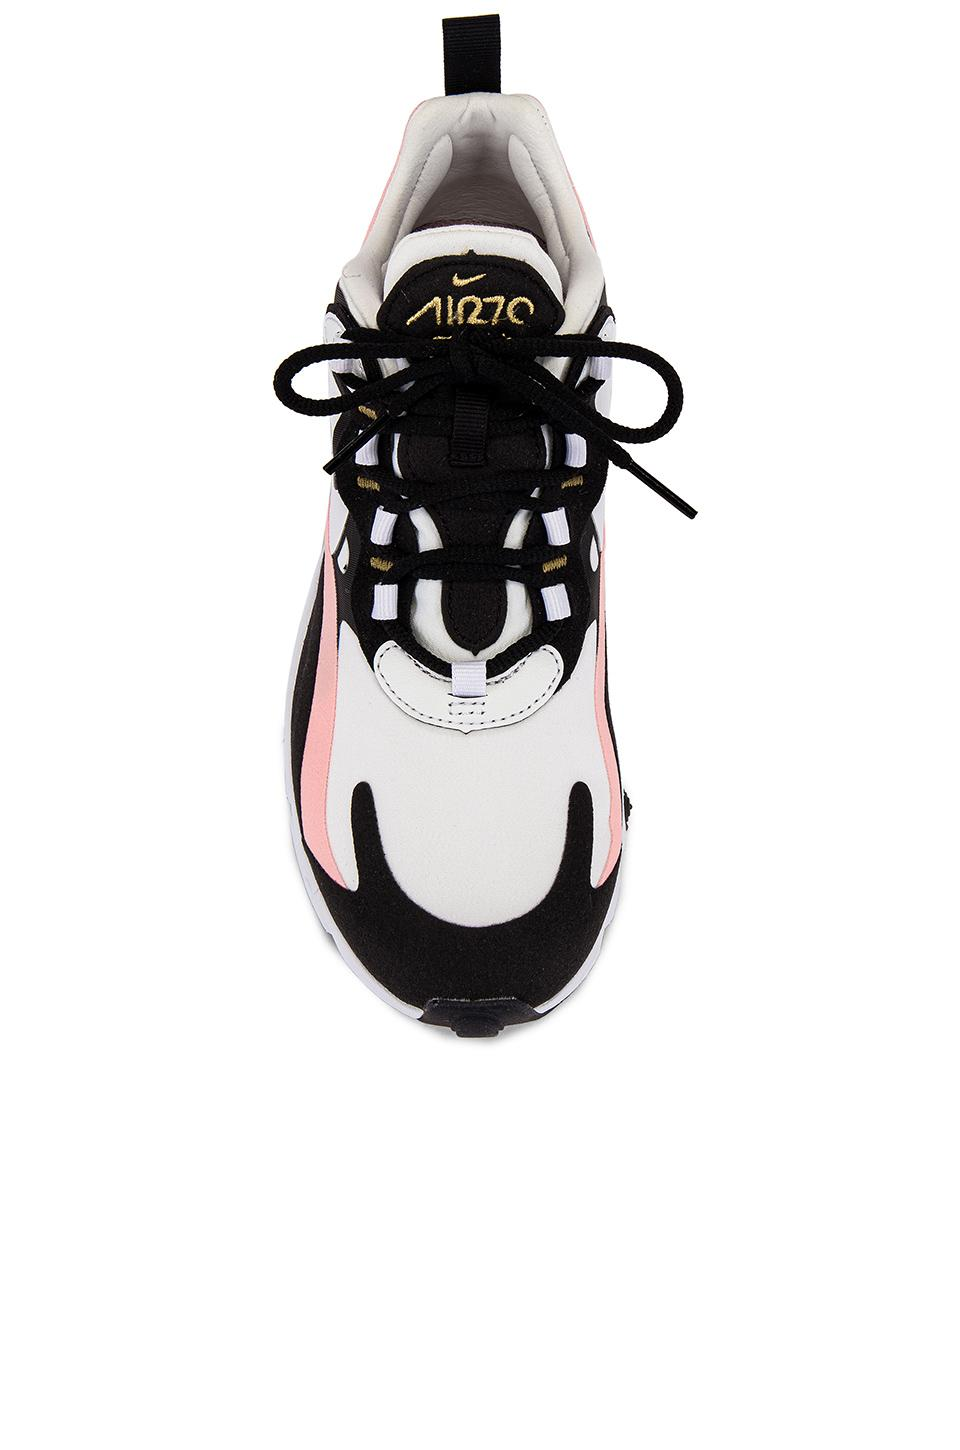 Zapatilla deportiva air max 270 react Nike de Caucho de color Negro